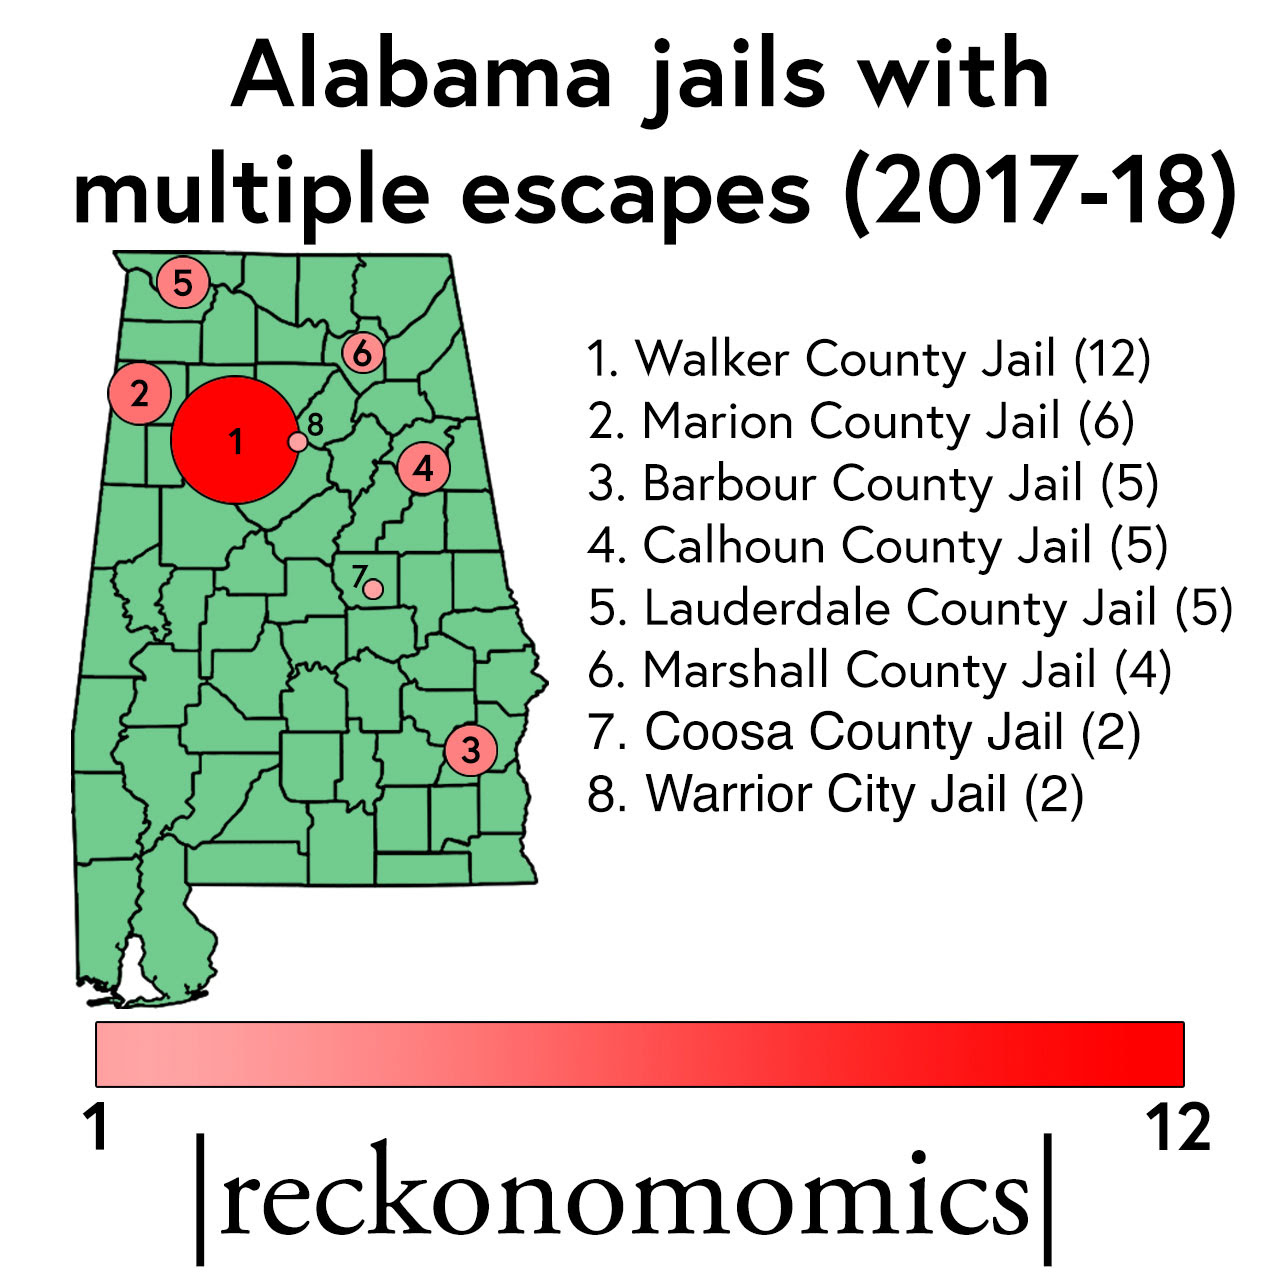 Alabama Jails with Escapes